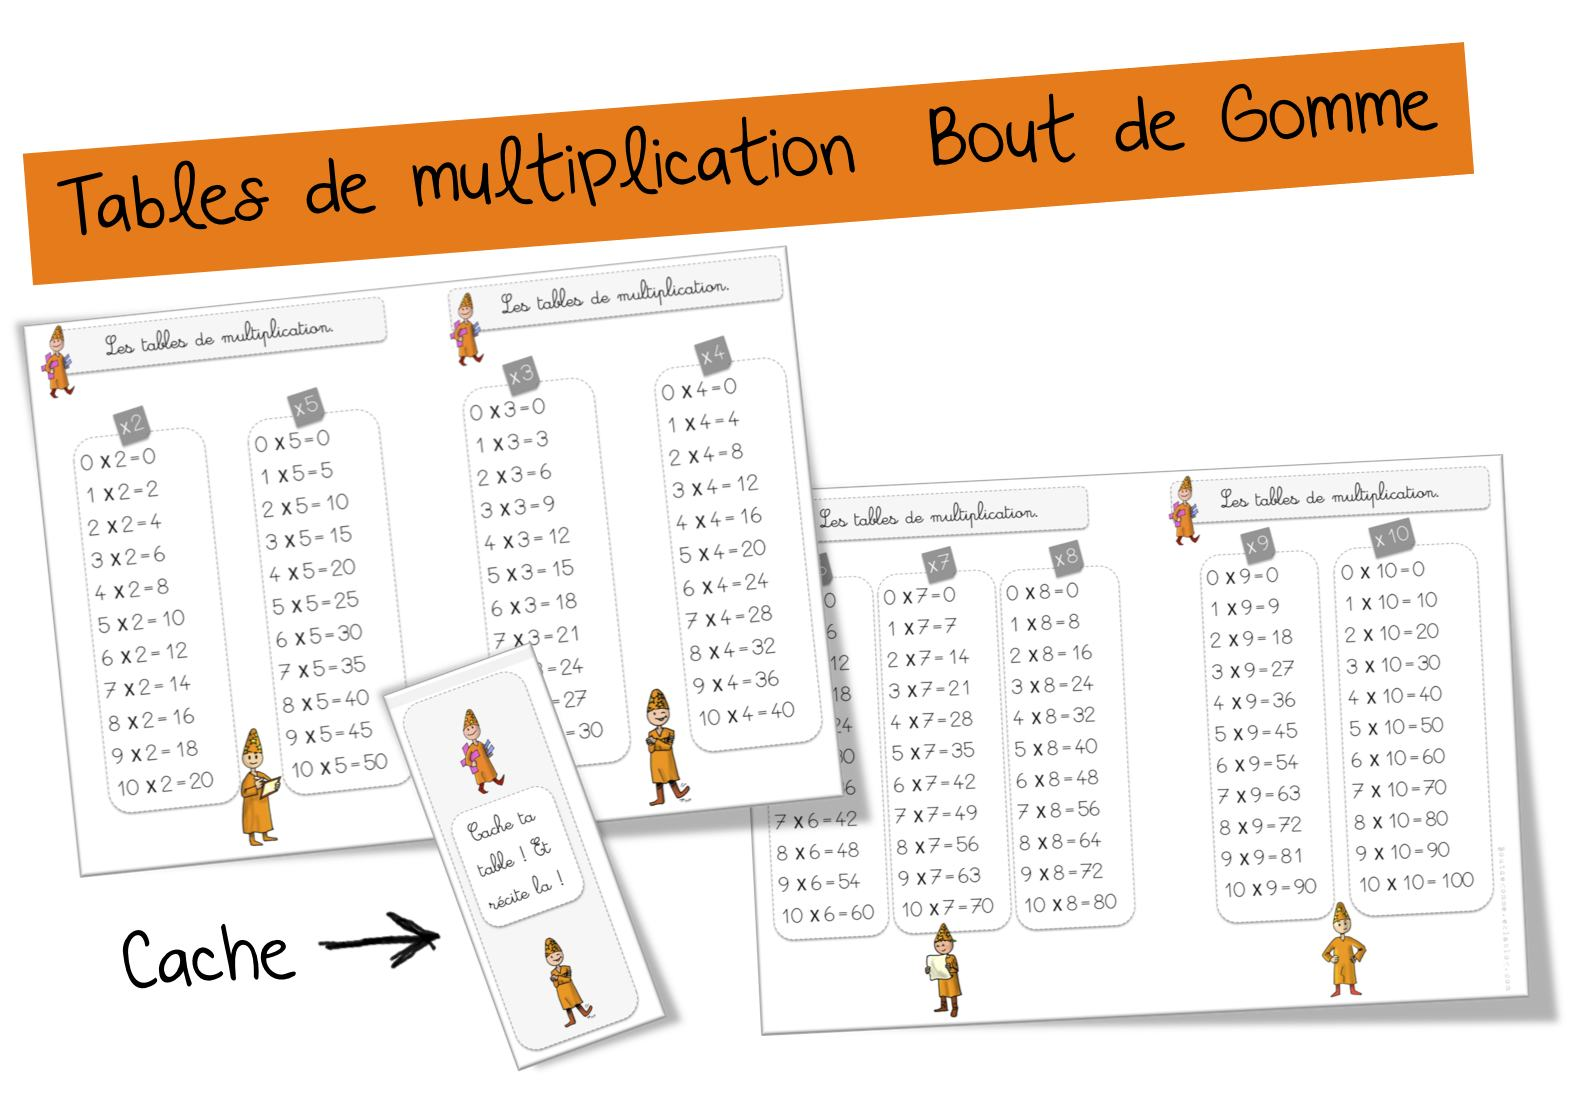 Exercice de table de multiplication 2 3 4 5 6 exercices tables de multiplication 2 3 4 5 - Table de multiplication de 30 ...